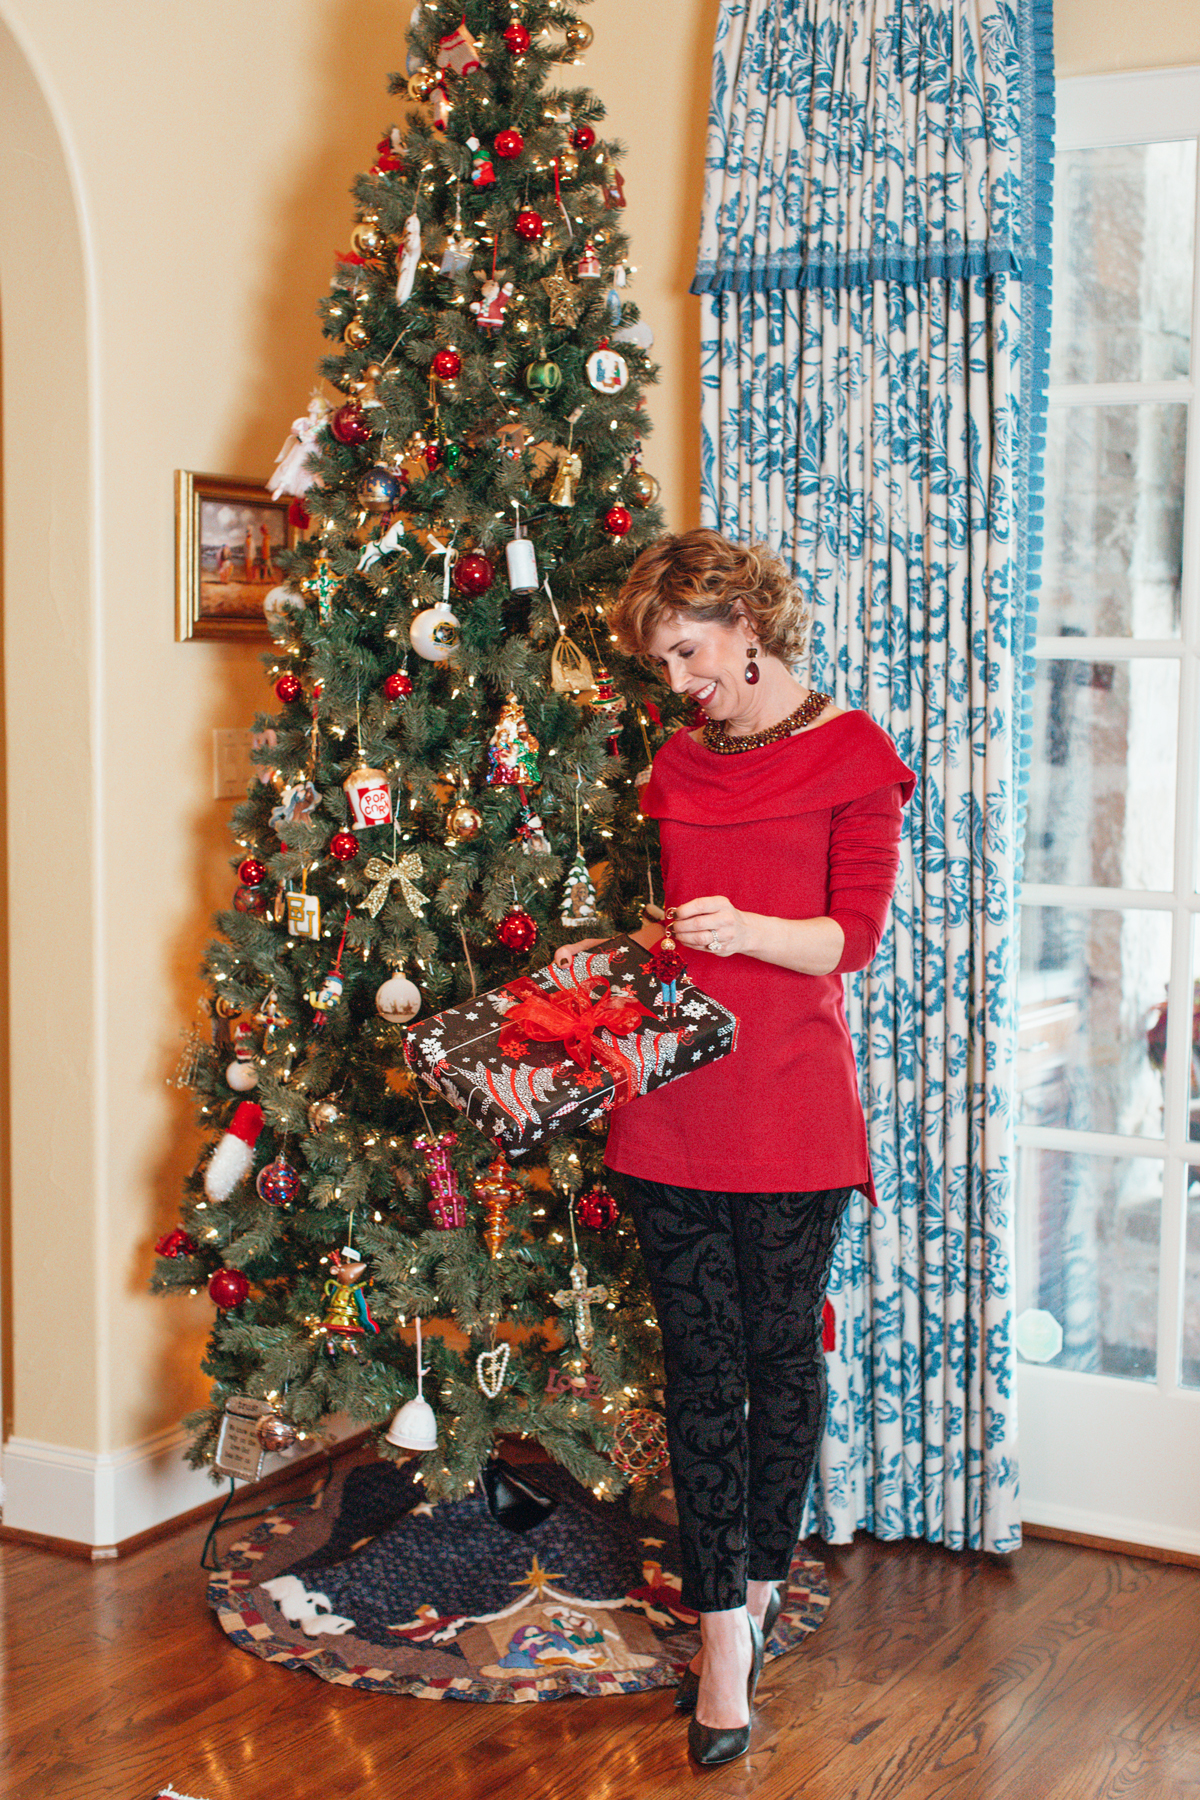 woman wearing red top and black pants holding a gift in front of a christmas tree and showing her family's gift giving traditions